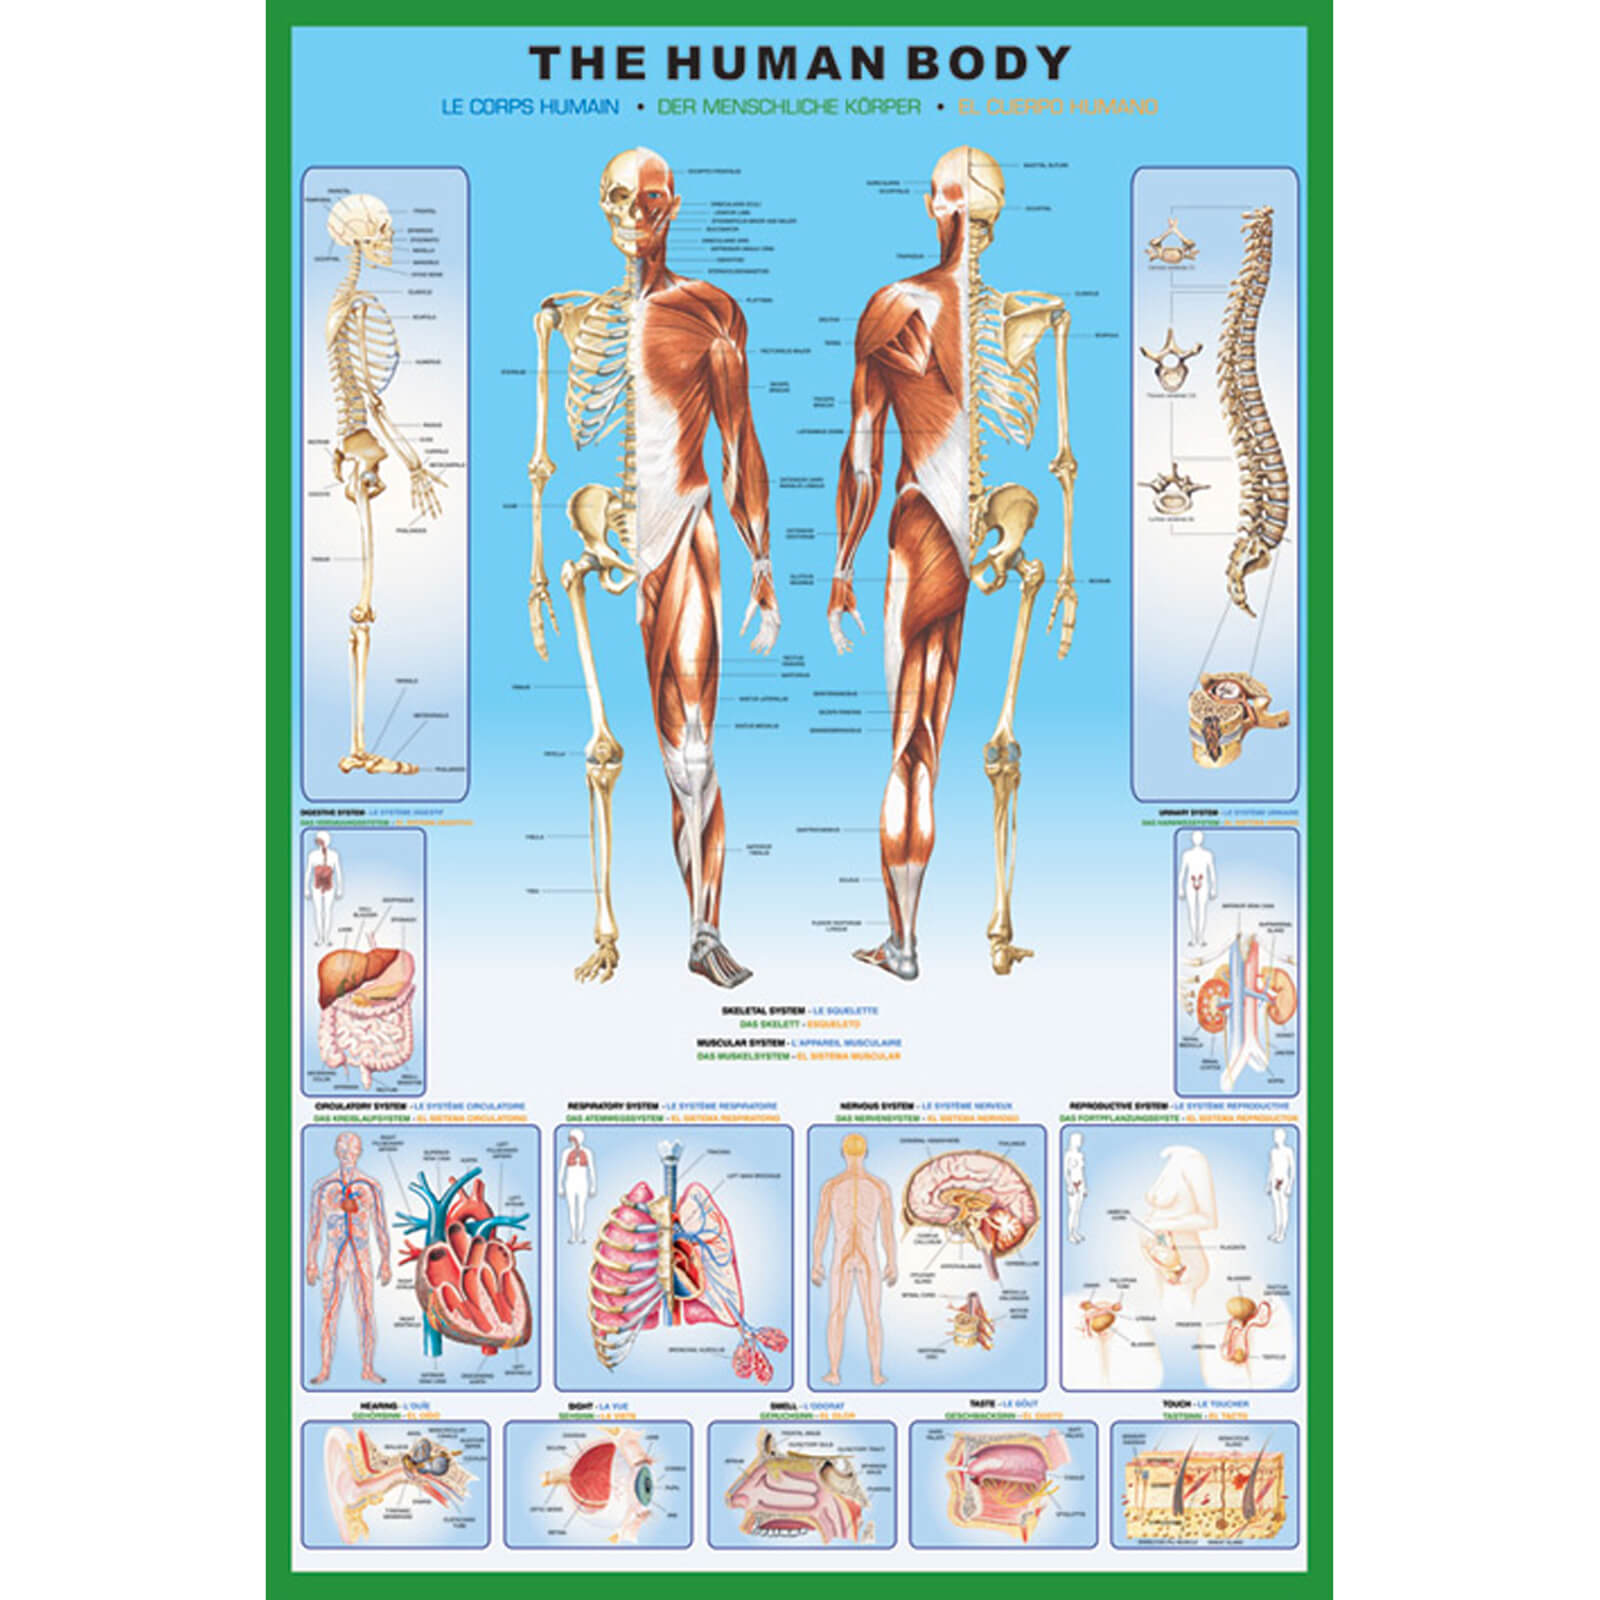 The Human Body - 61 x 91.5cm Maxi Poster